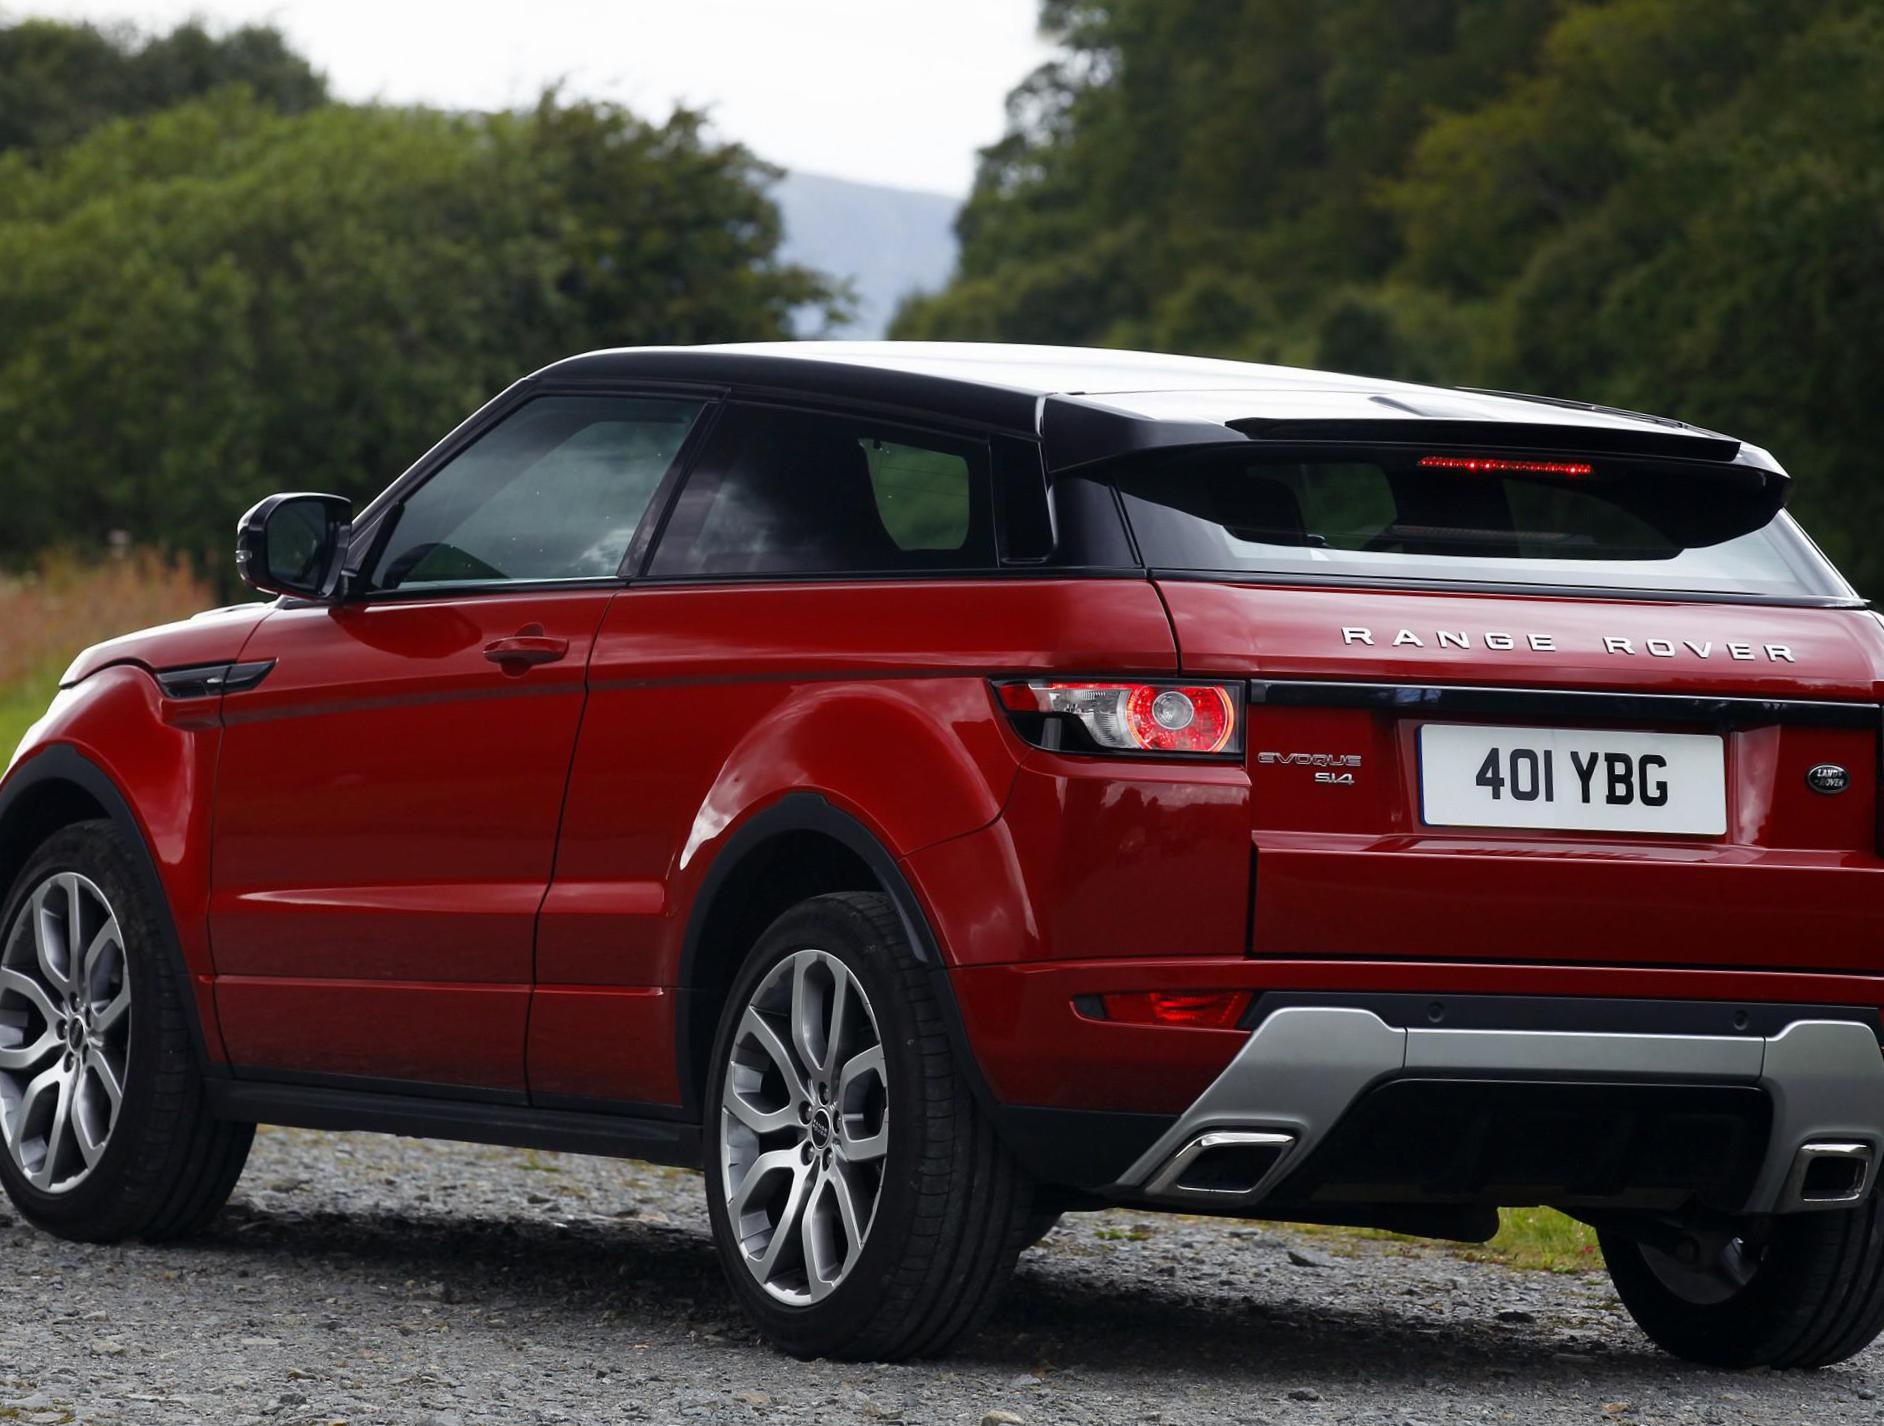 Land Rover Range Rover Evoque Coupe Specification 2012